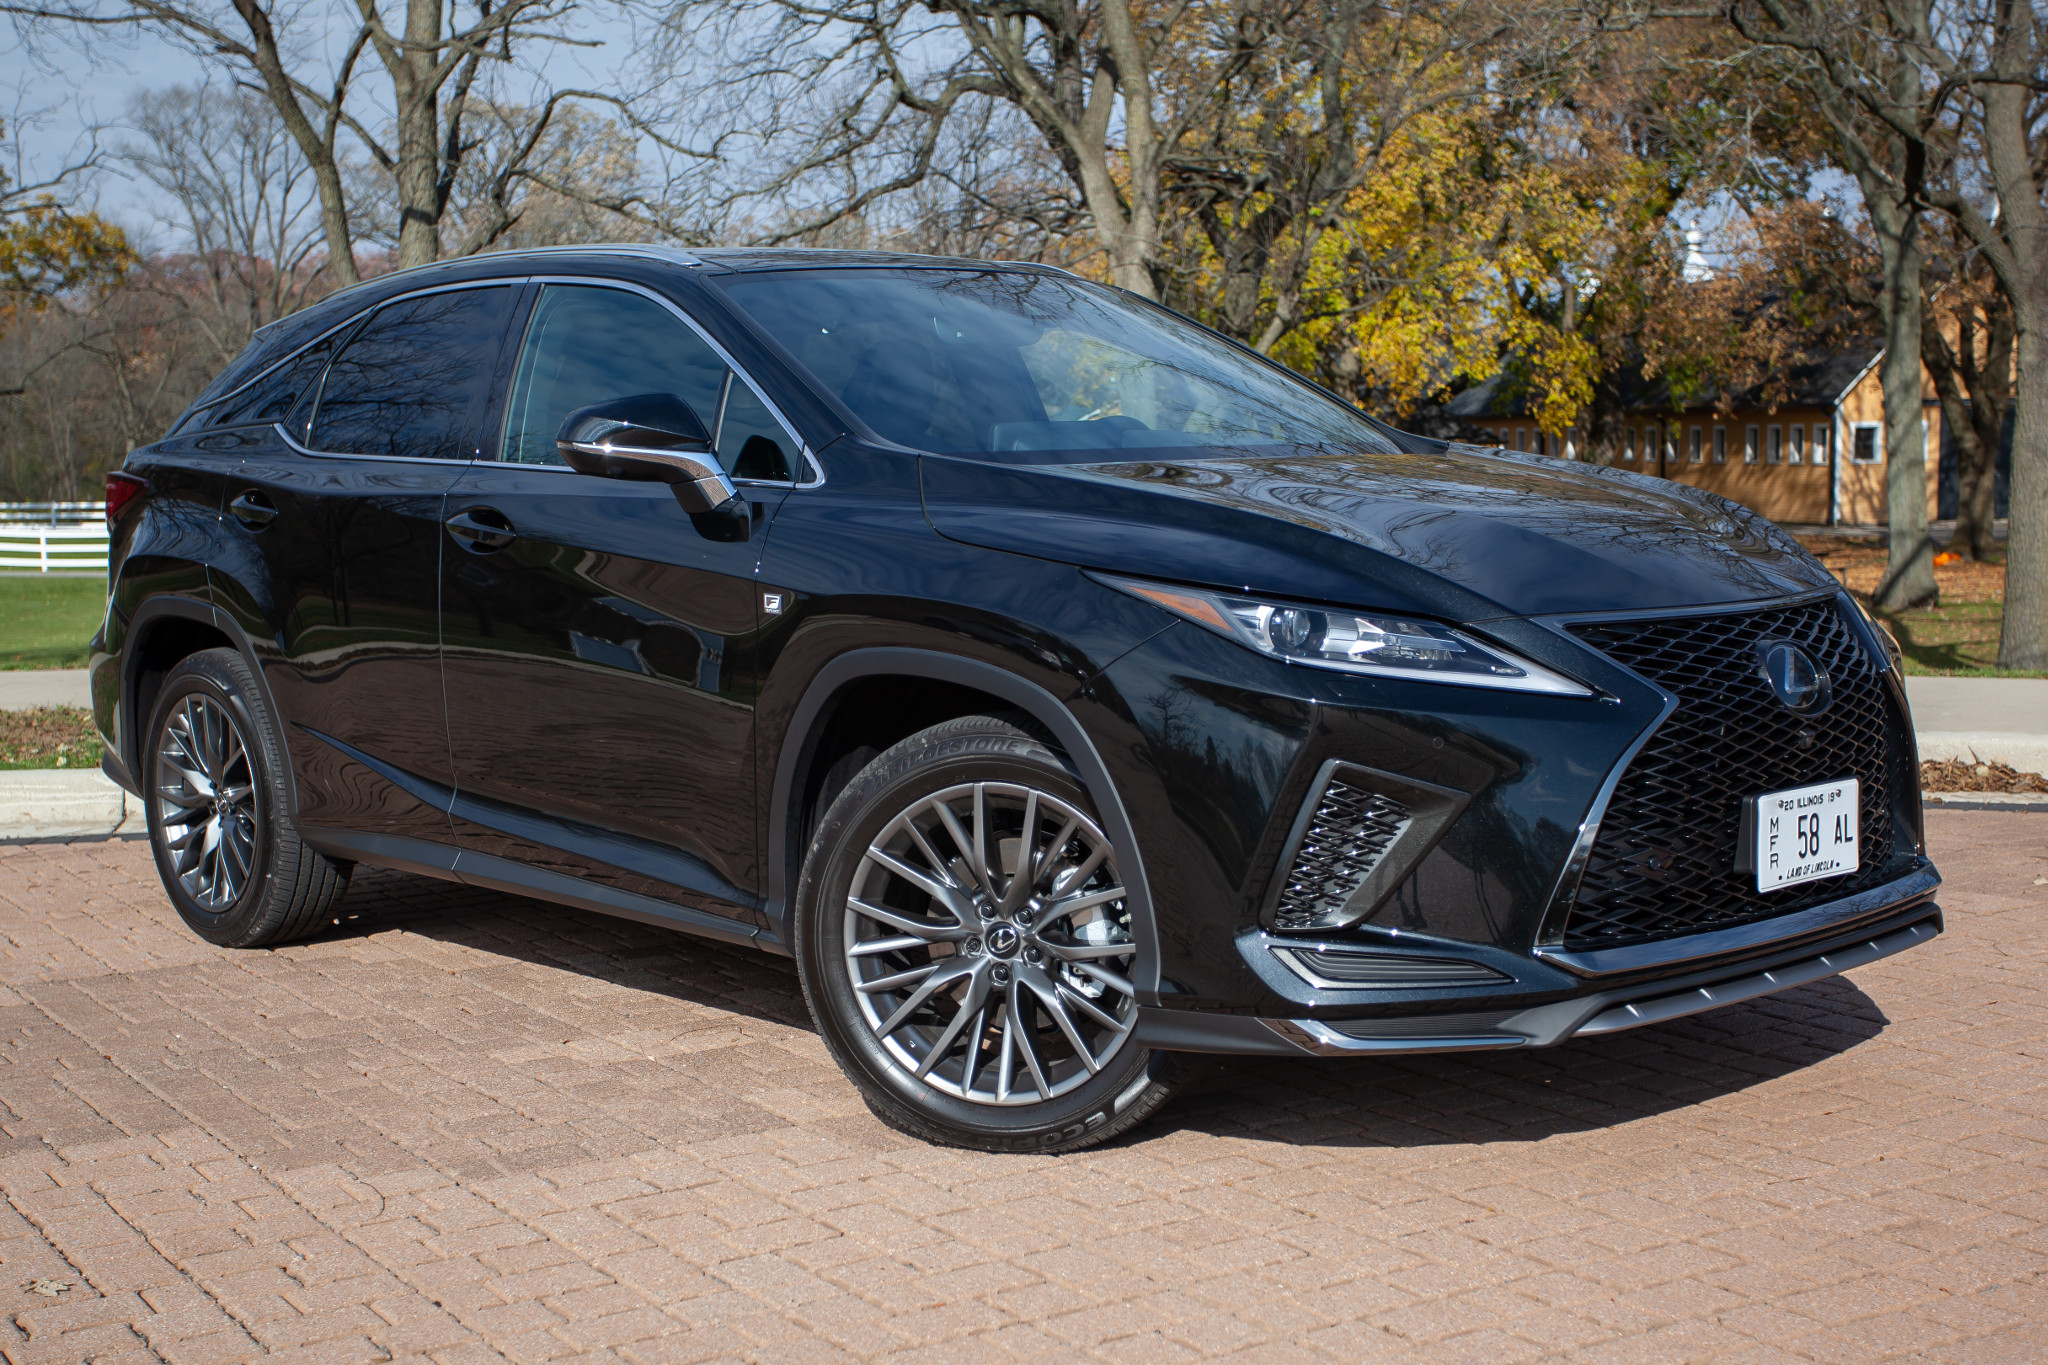 Lexus 2020 RX SUV Family Brings Home Safety Awards, Falls